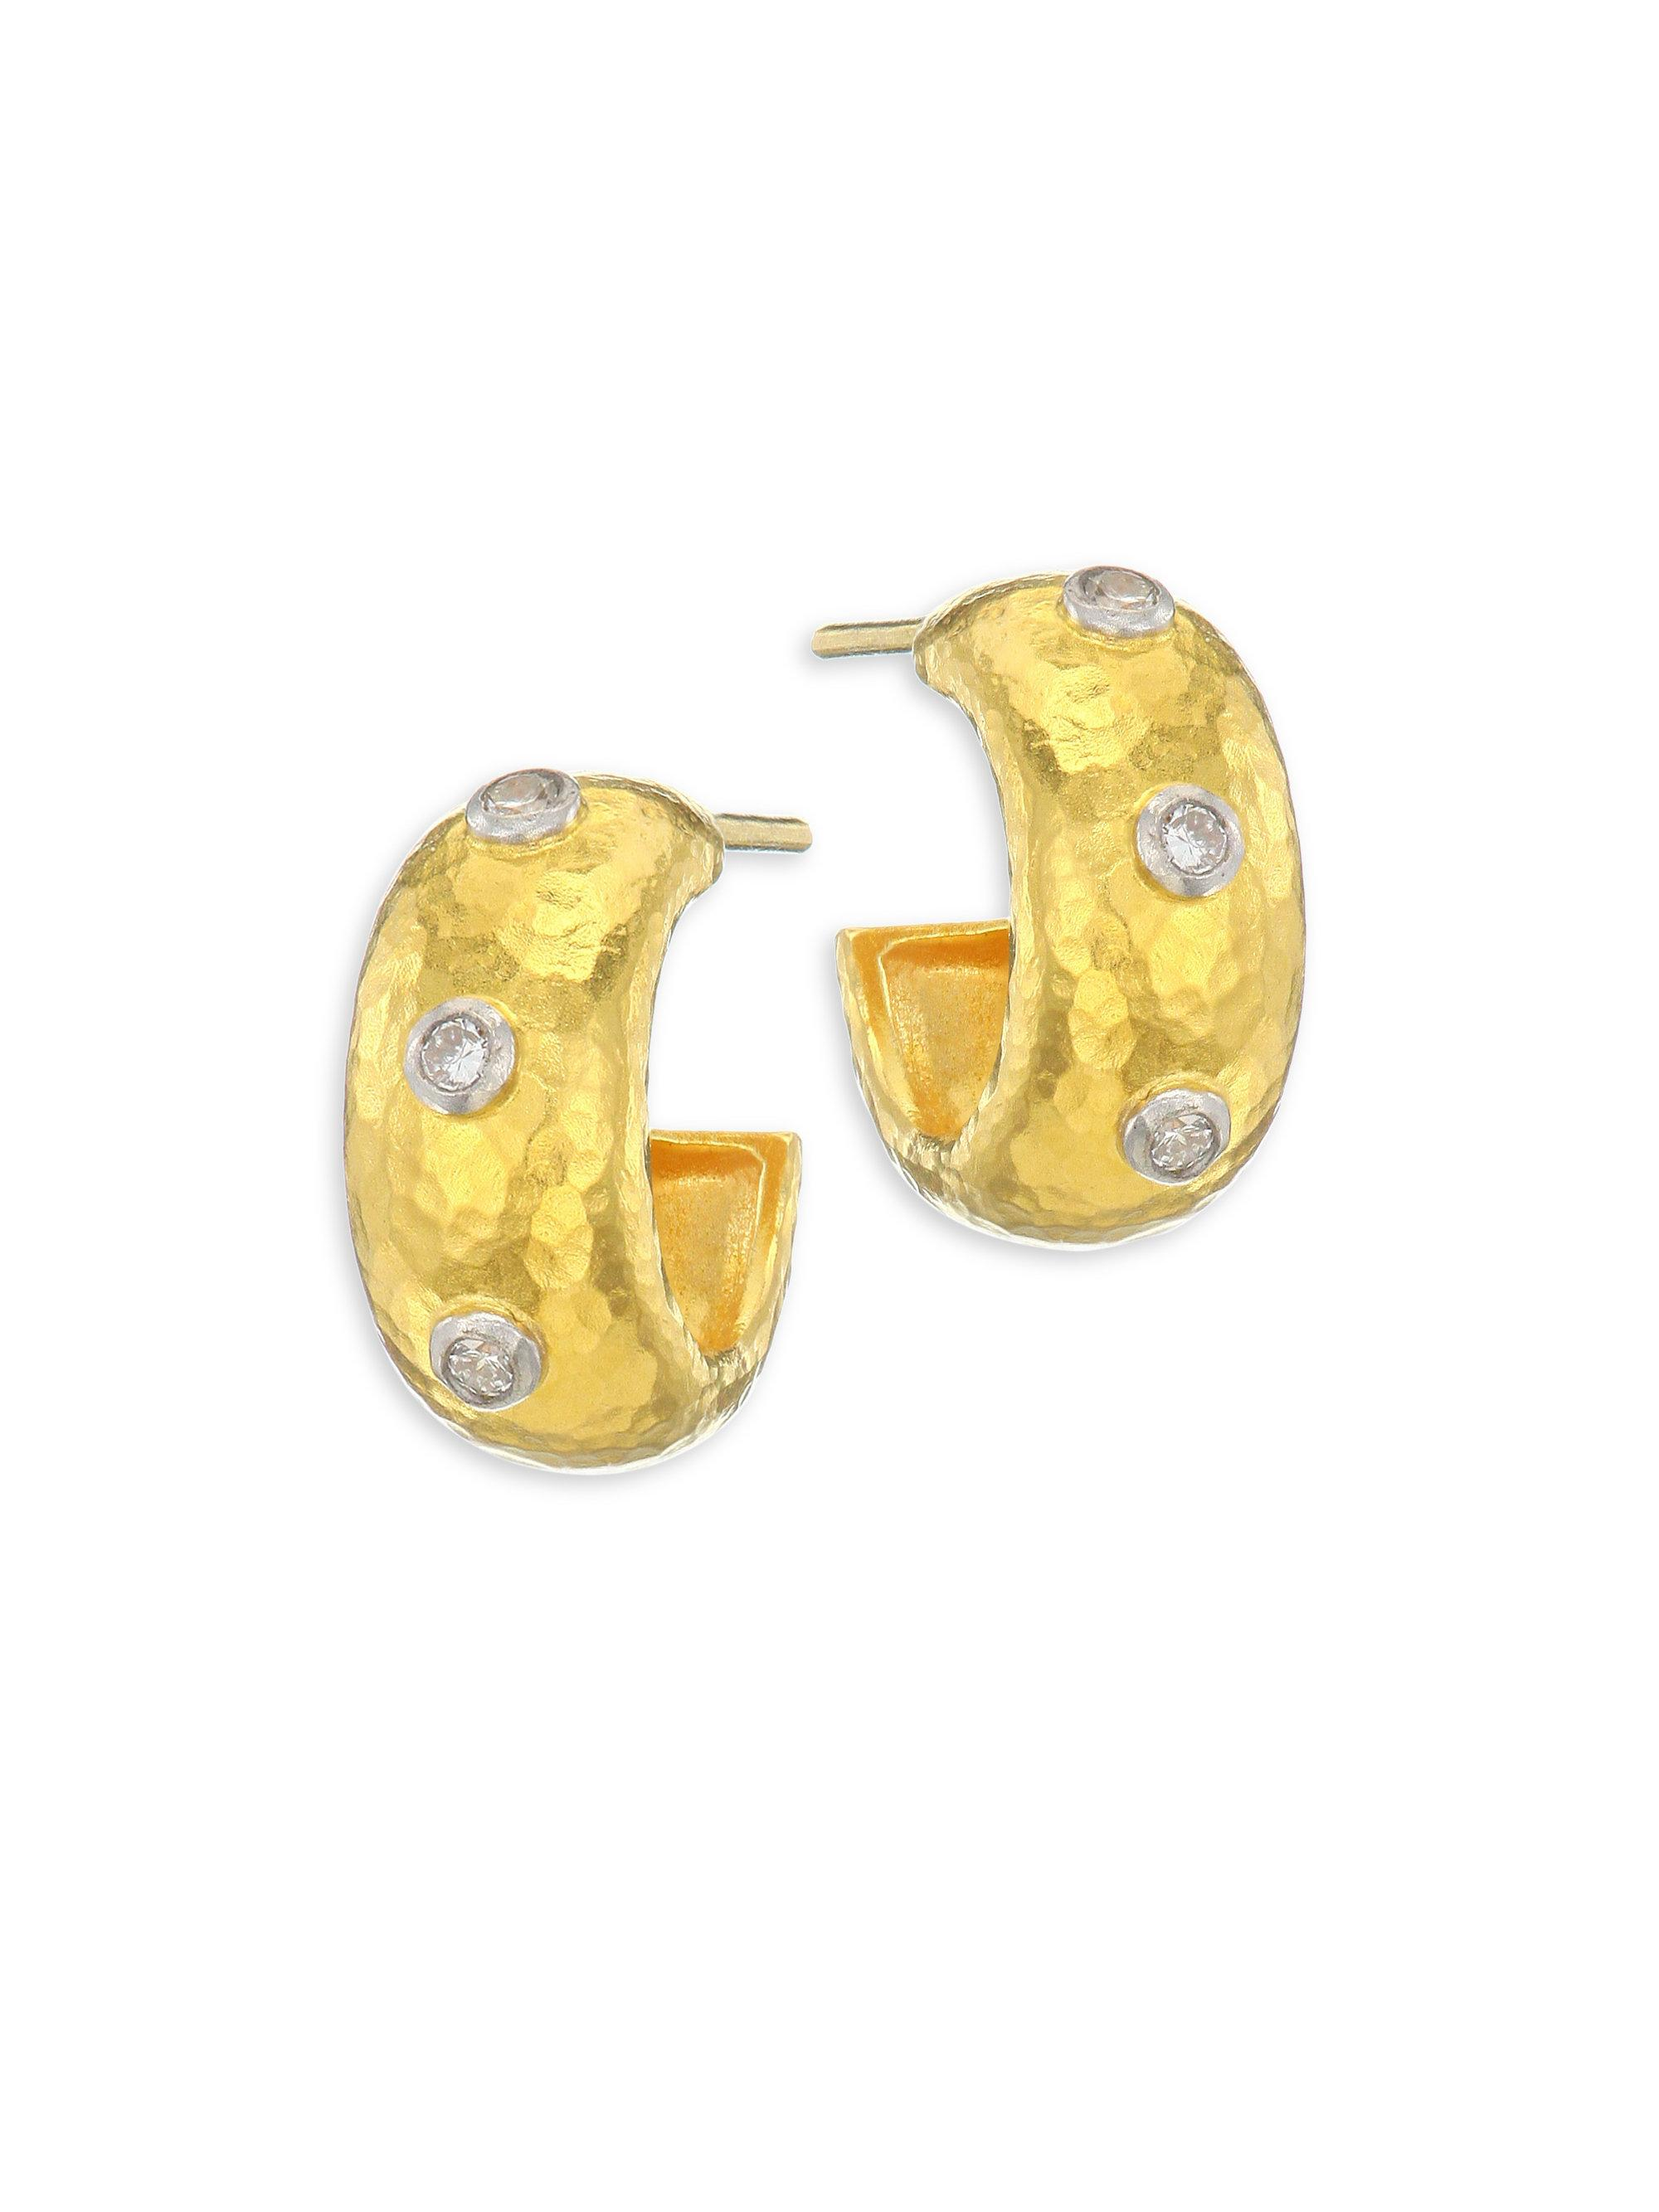 stone gold earrings products re yellow dolce val